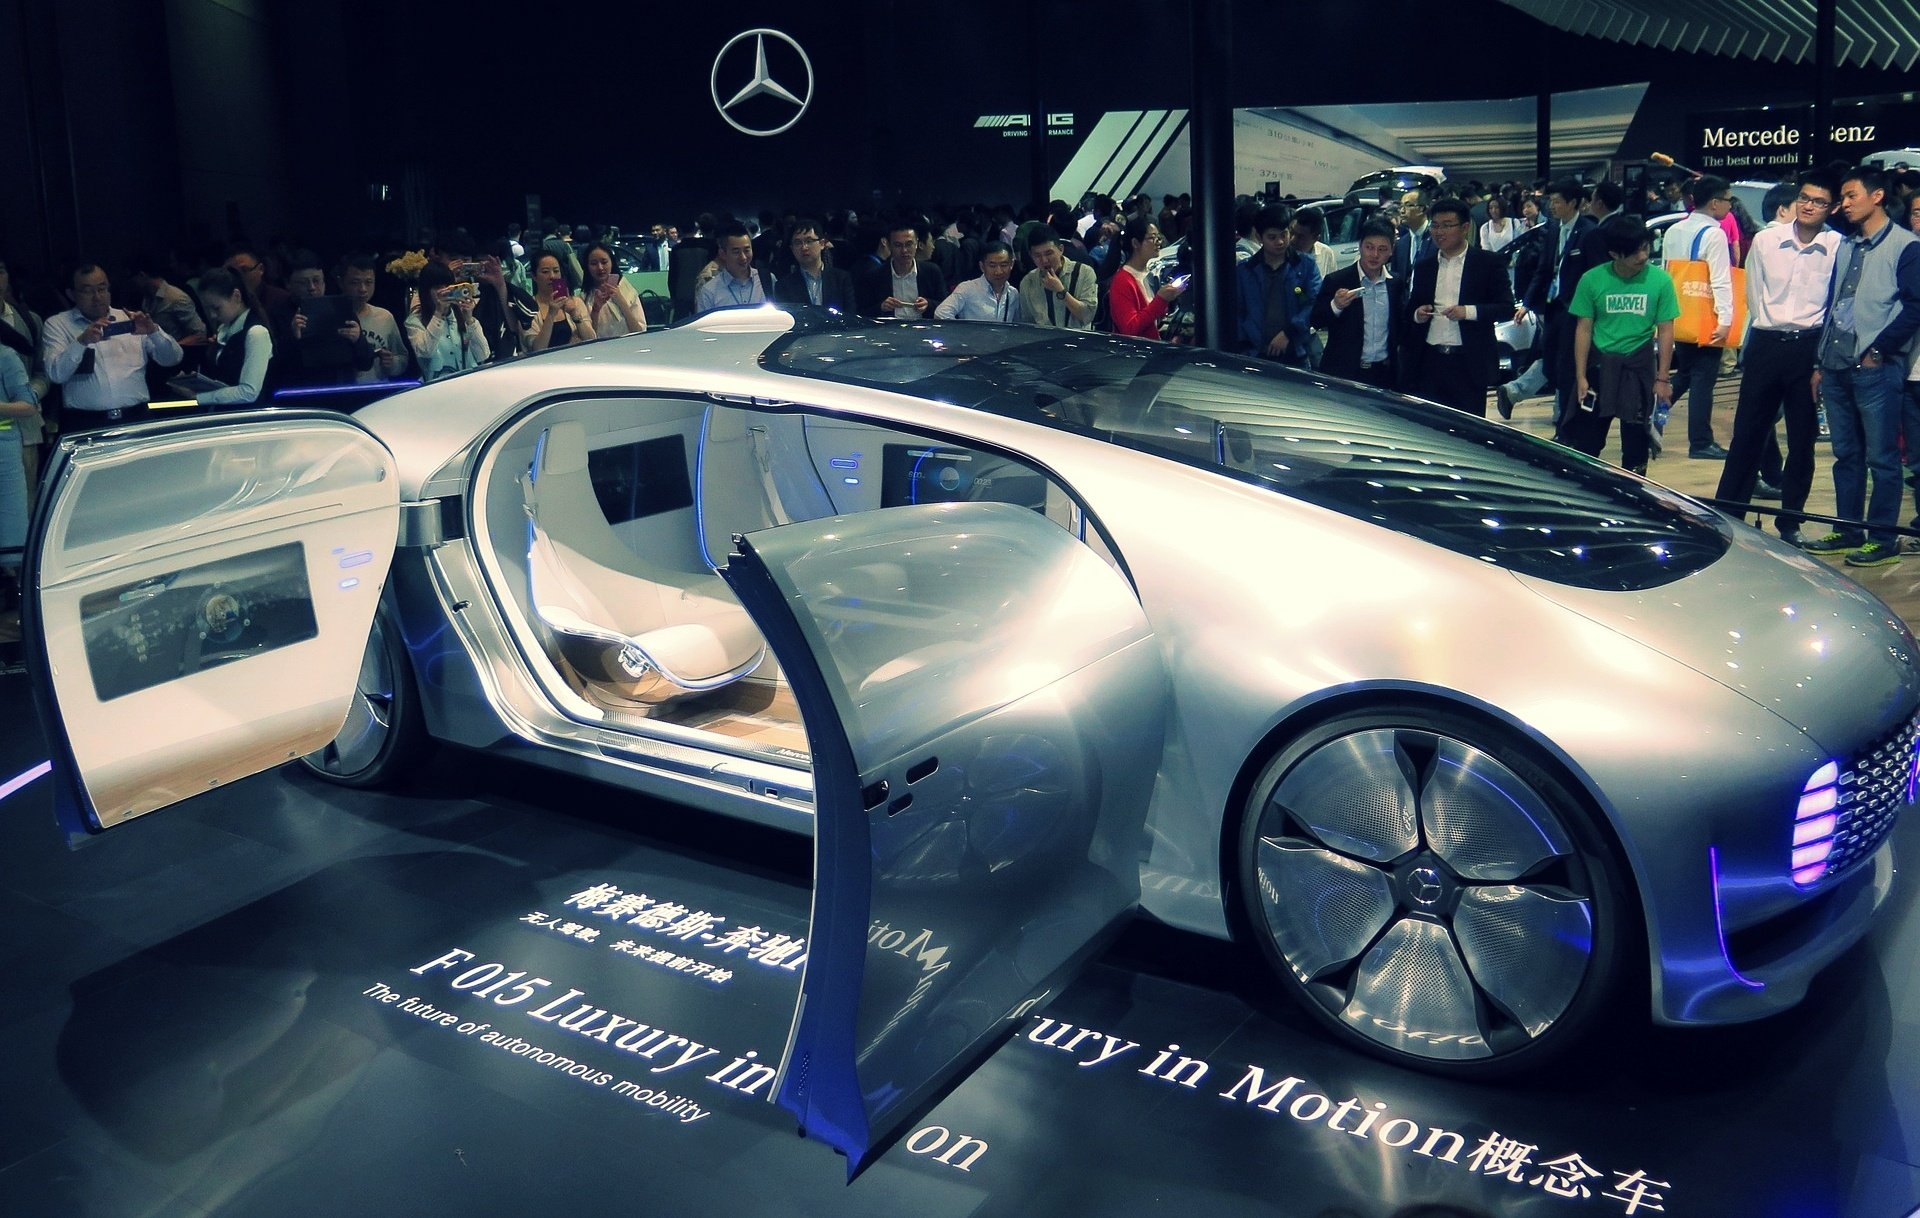 Mercedes Benz F015 concept car (Pixabay)-703506-edited.jpg